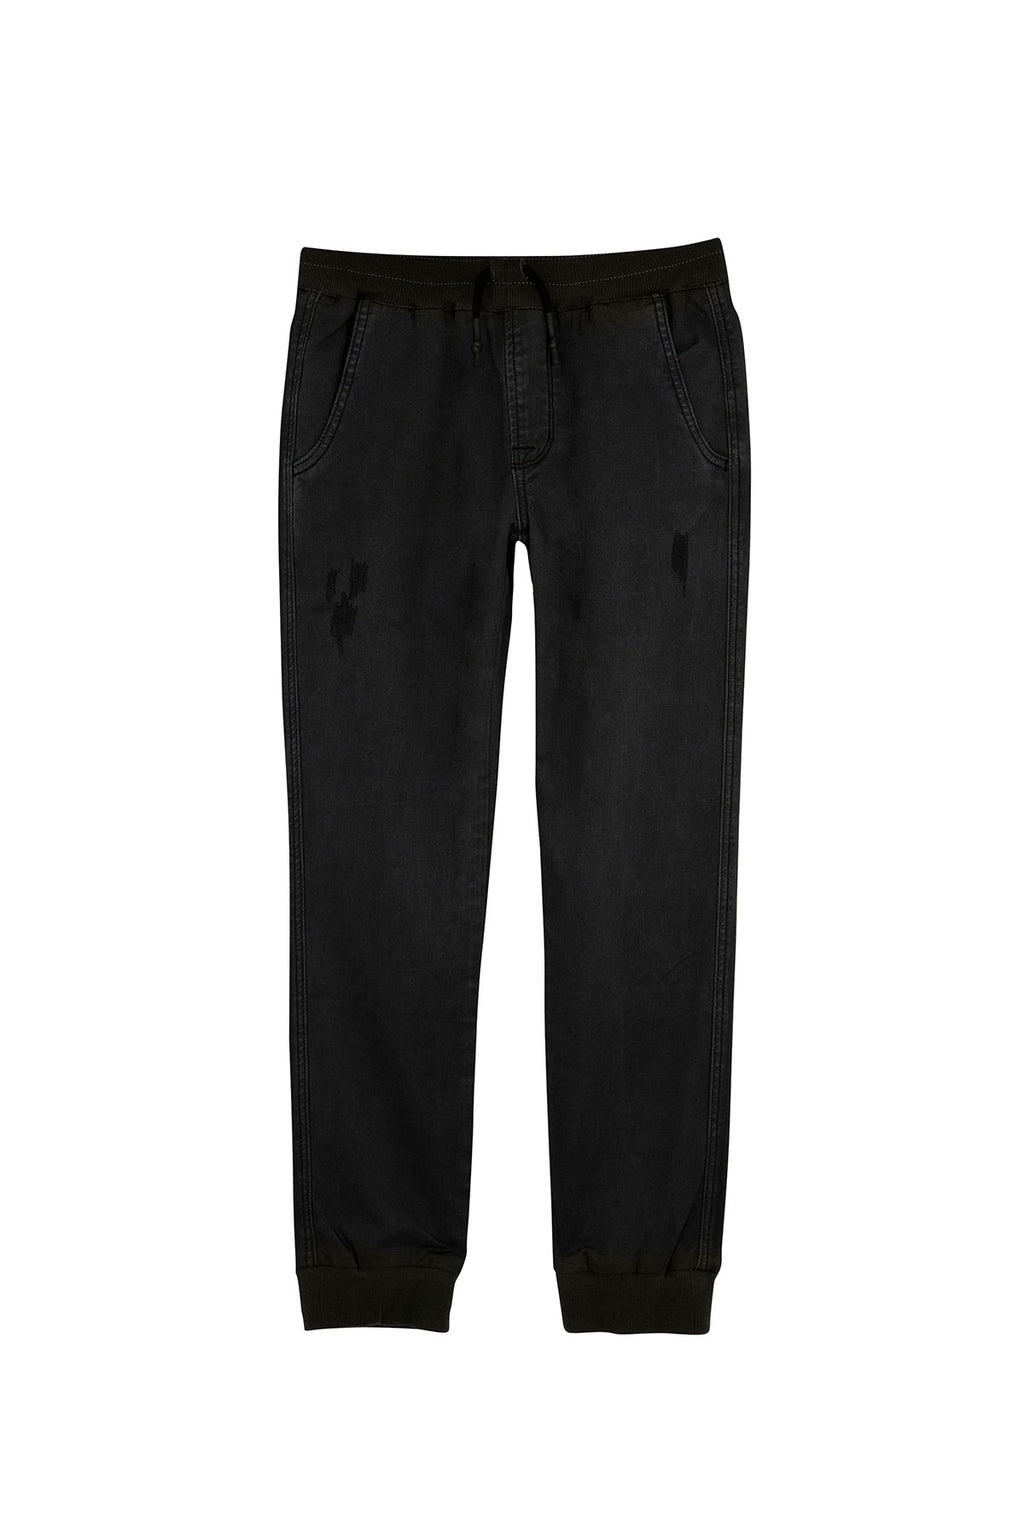 BOYS LUCAS JOGGER, SIZES 8-20 - LIGHT BLACK - Image 2